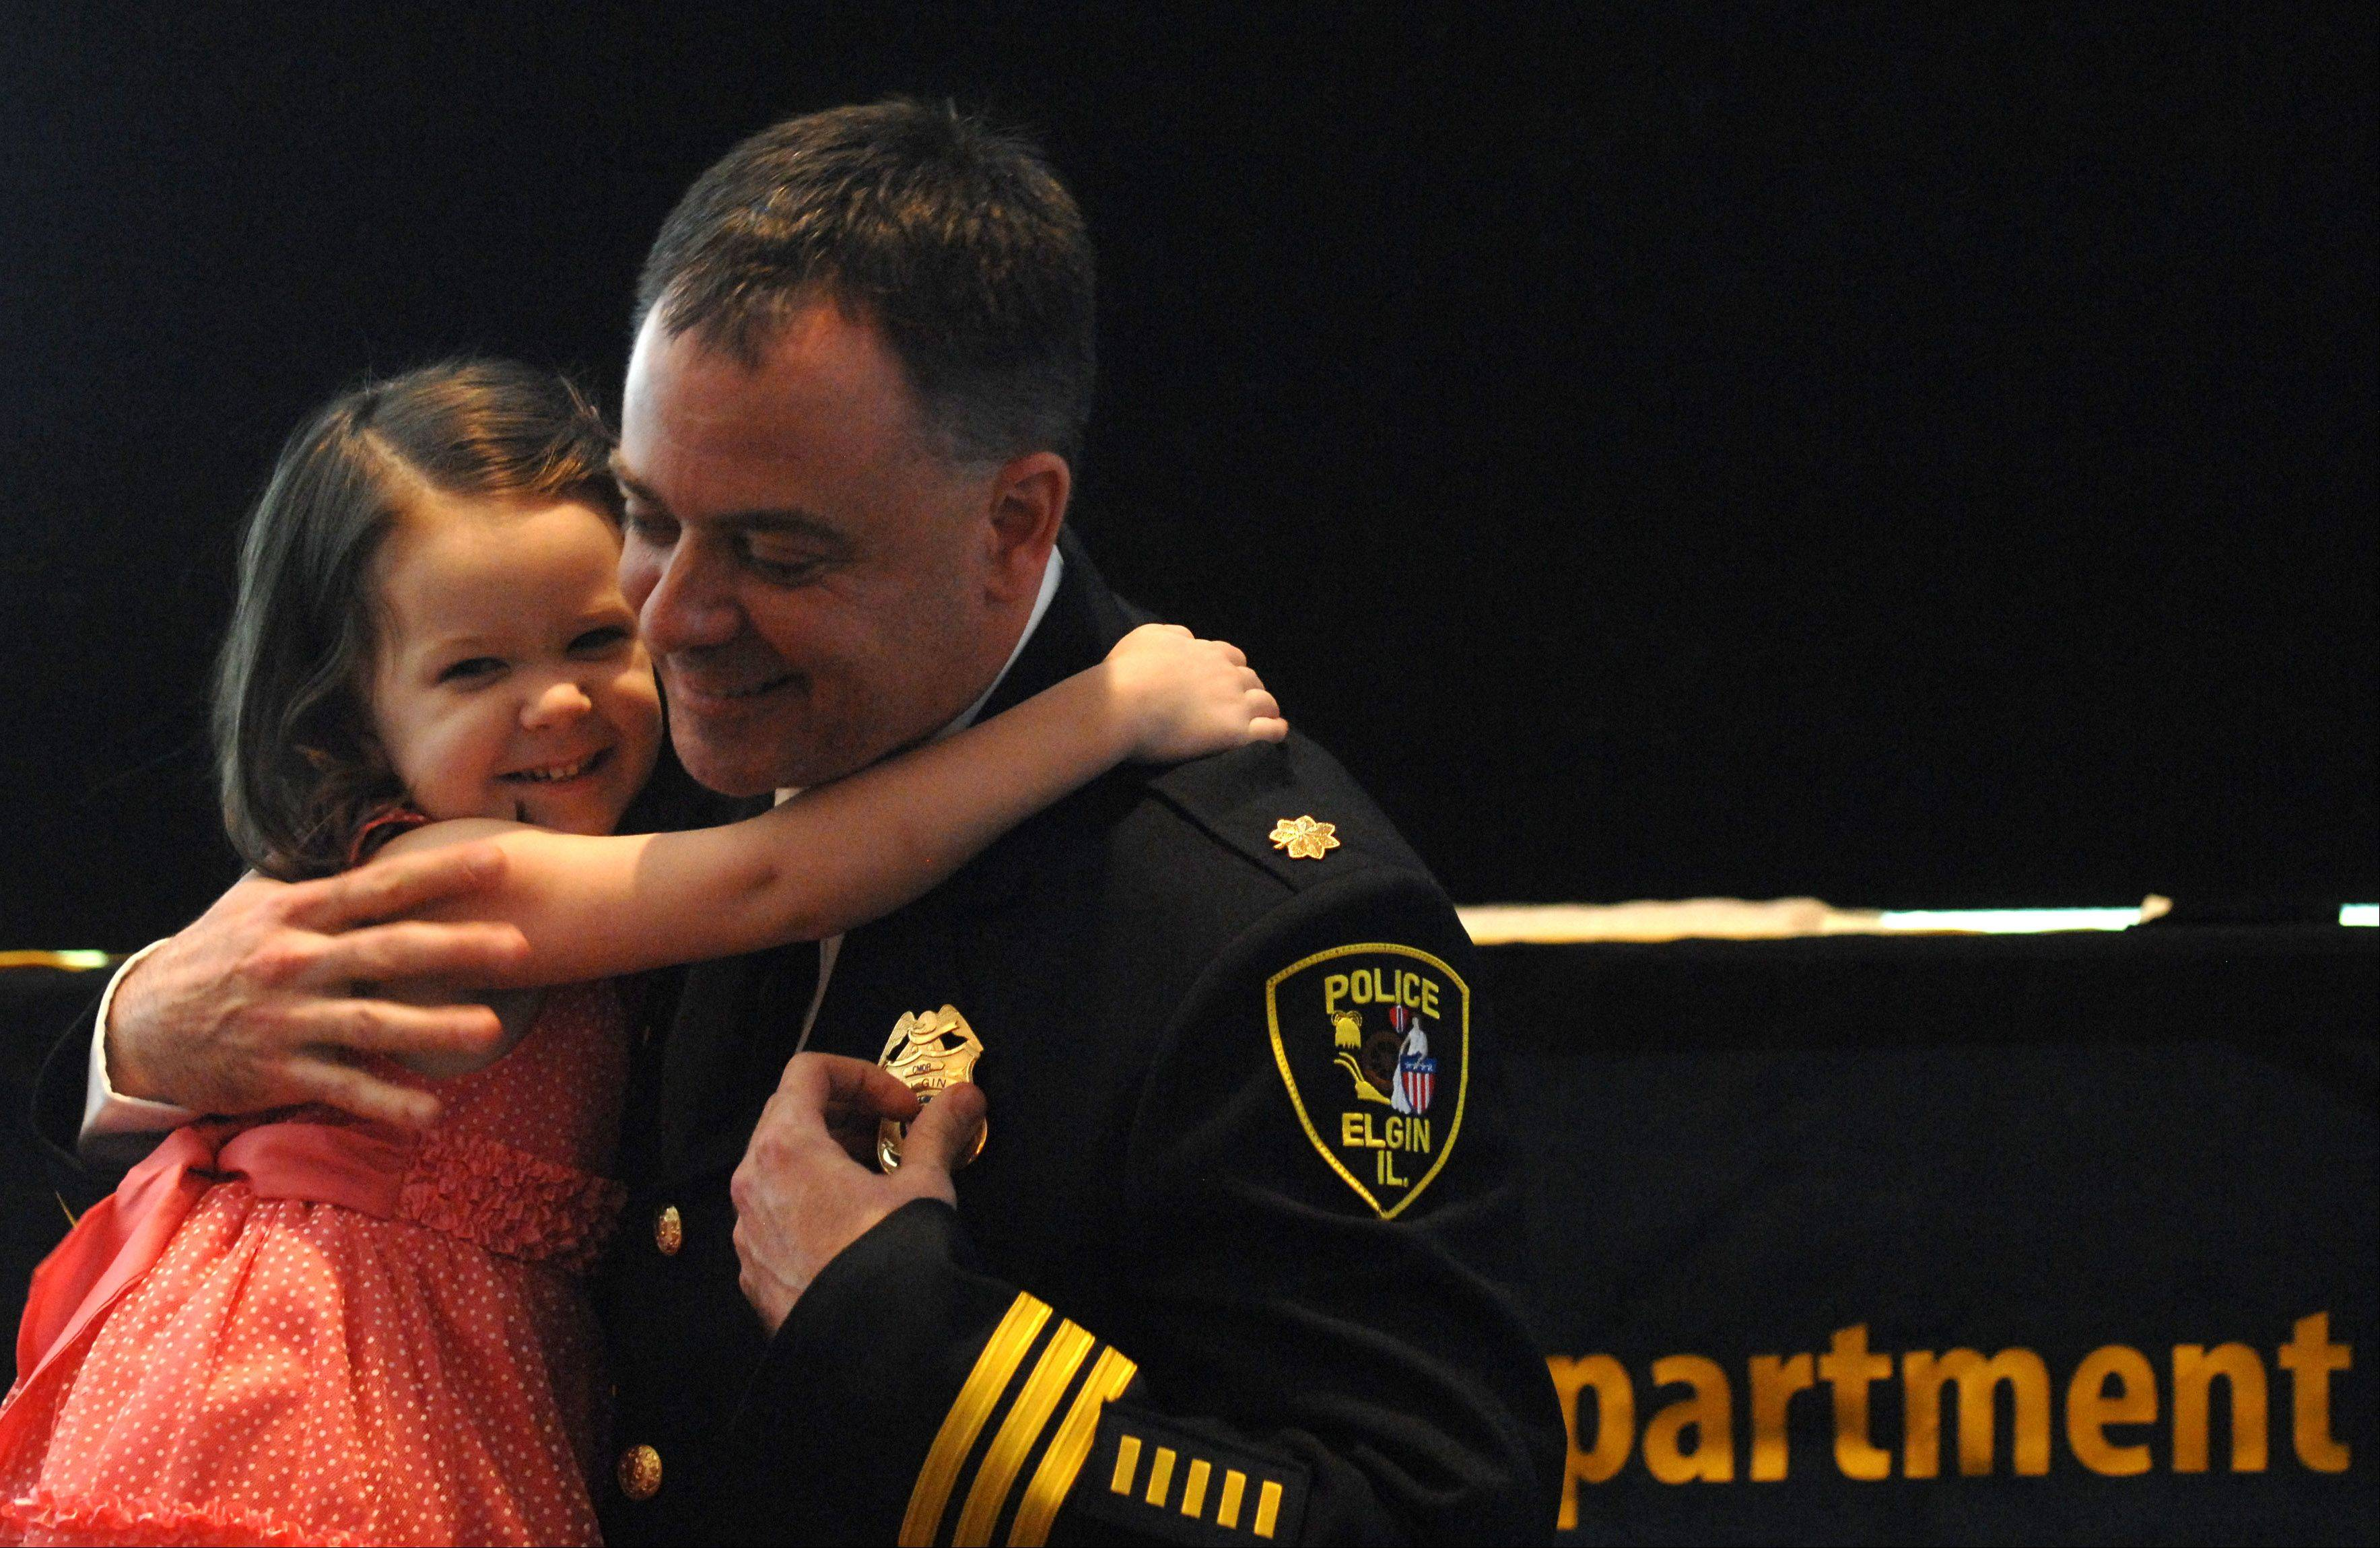 Bill Wolf gets a hug from his daughter Abby, 3, after she pinned on his badge just after he was the first person sworn in to the rank of Commander during a promotion and retirement ceremony for the Elgin Police Department Friday.